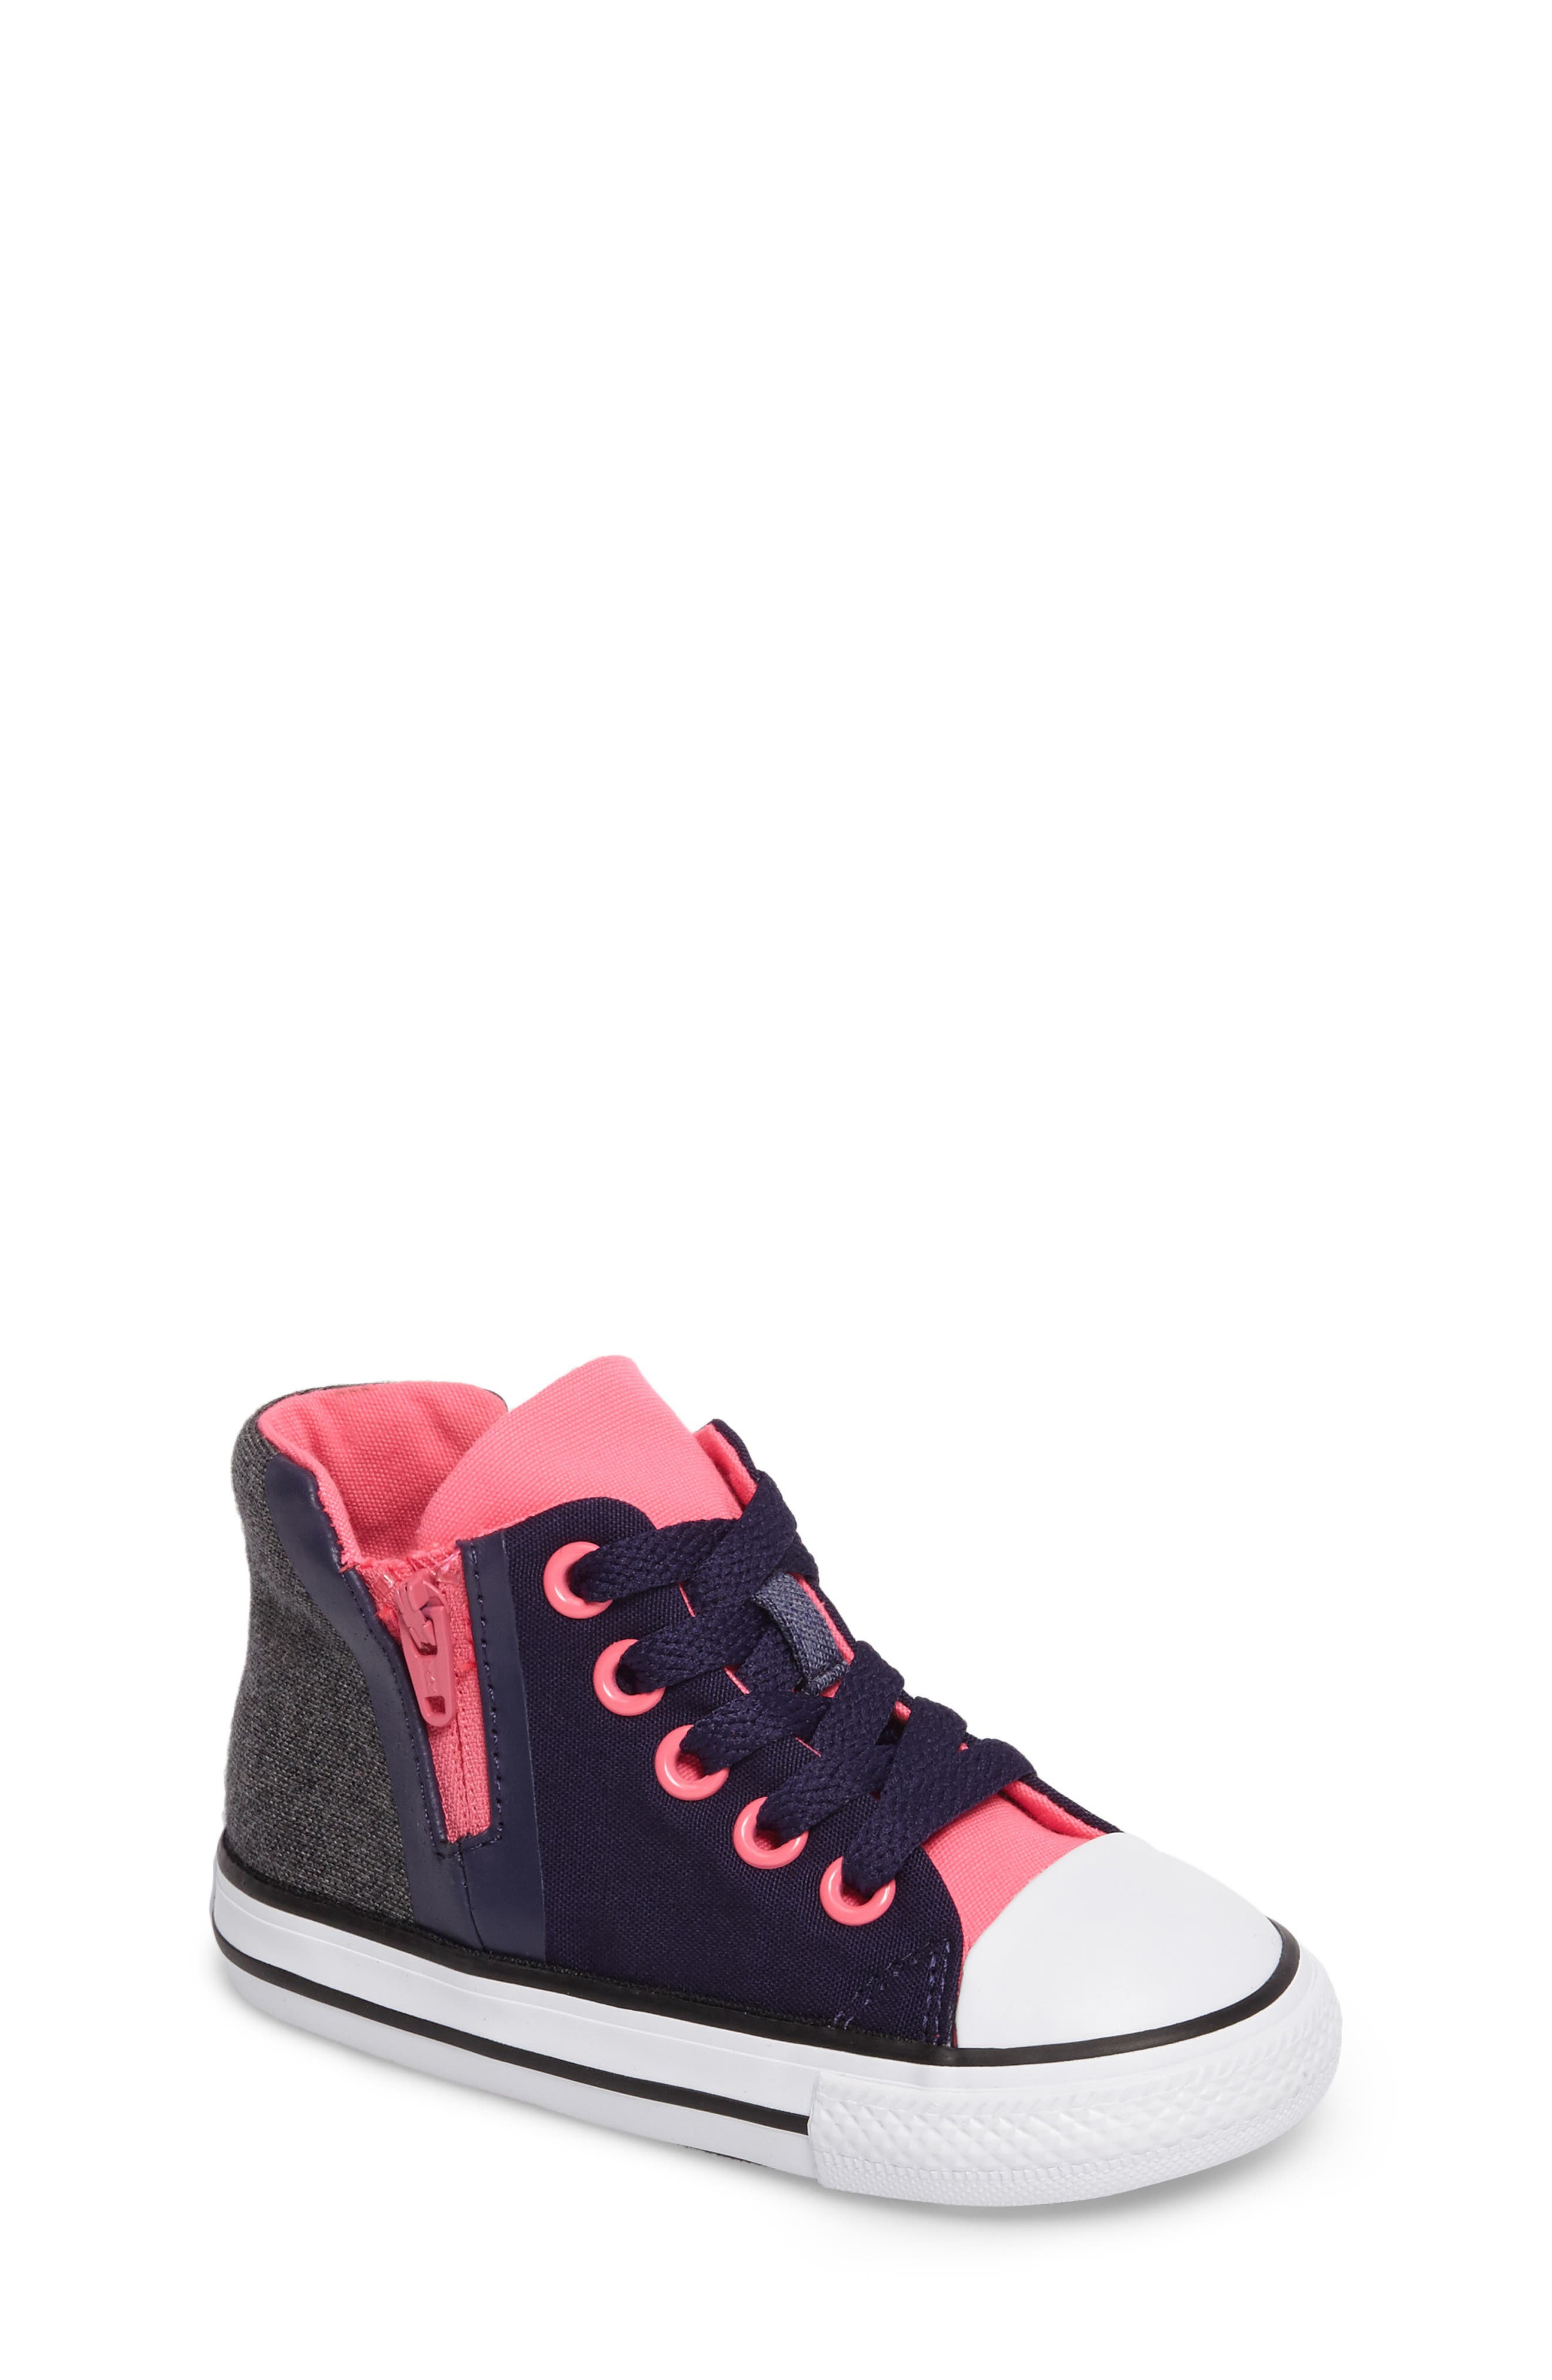 converse youth high tops. converse chuck taylor® all star® sport zip high top sneaker (baby, walker youth tops a